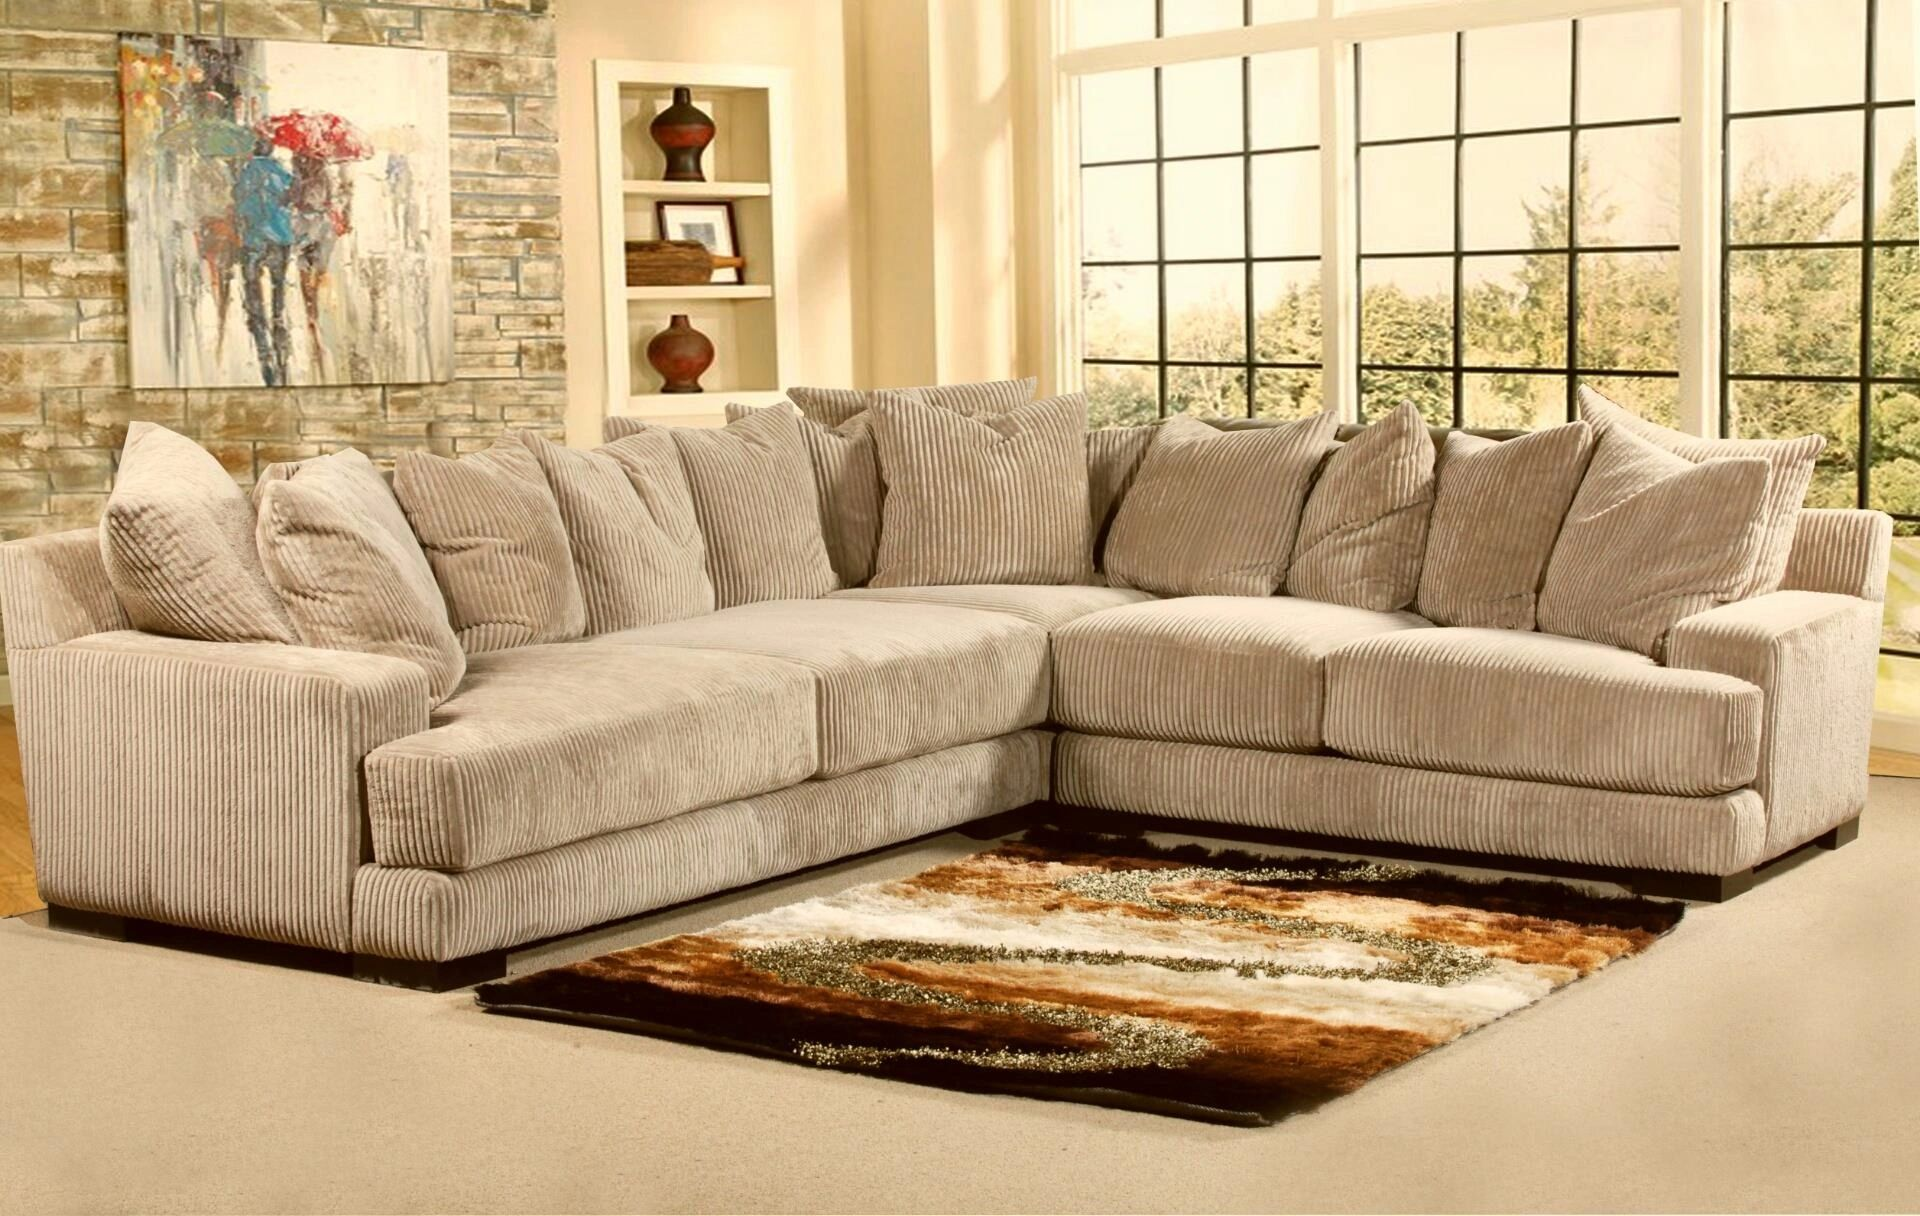 : robert michael rocky mountain sectional - Sectionals, Sofas & Couches